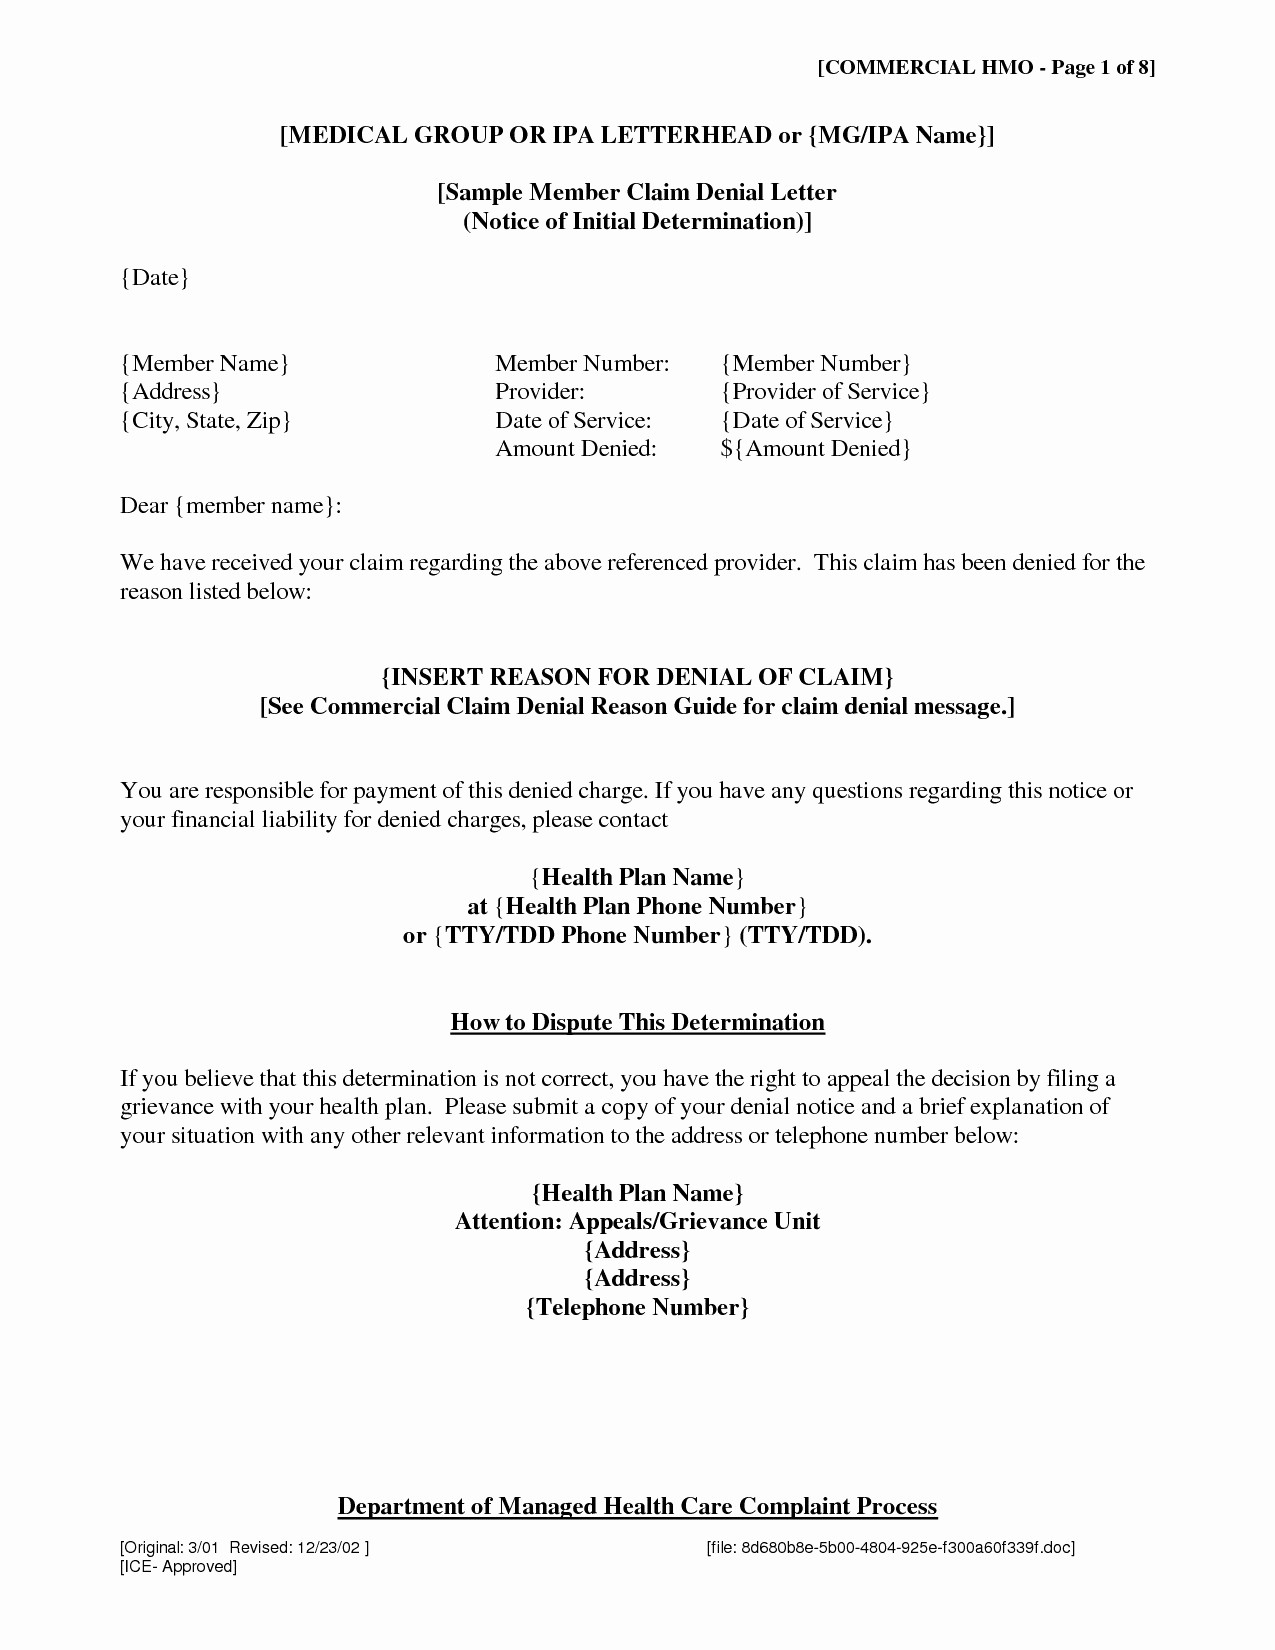 Claim Denial Letter Sample Airline Lovely Claim Denial Letter Template Examples